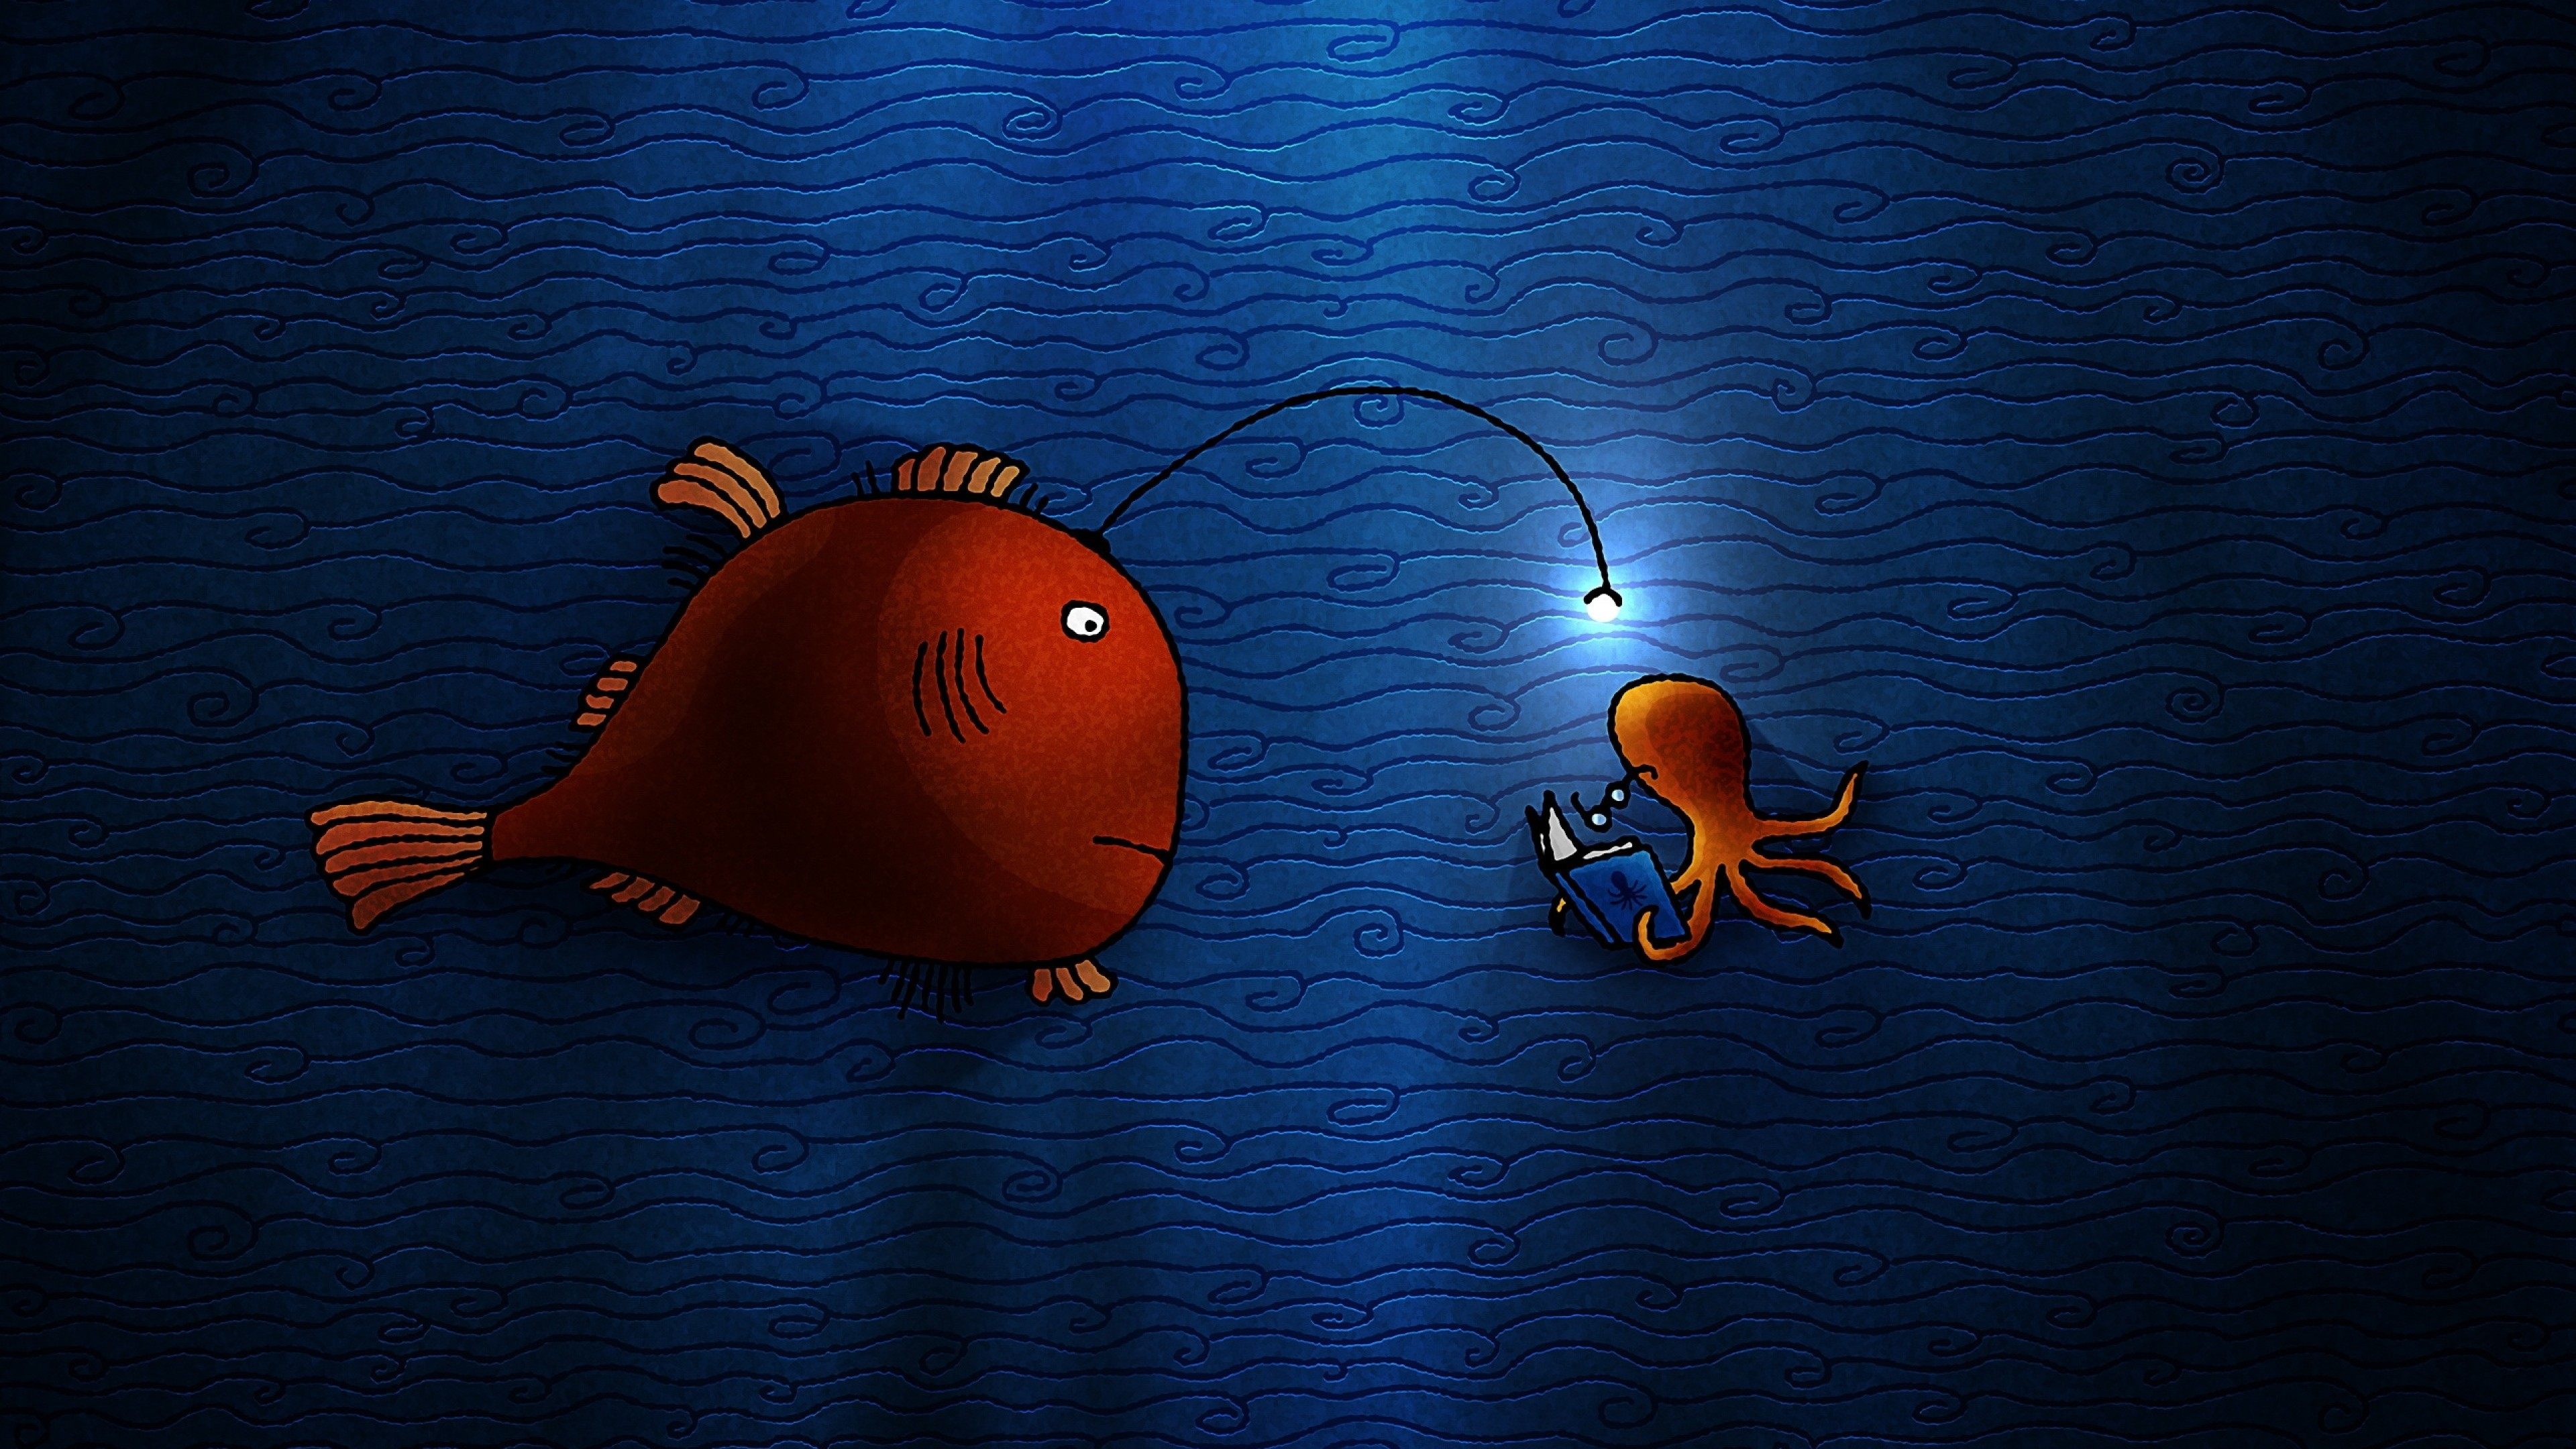 3840x2160, Red Fish Wallpaper For Iphone   Data Id - Youtube Channel Fish Art - HD Wallpaper